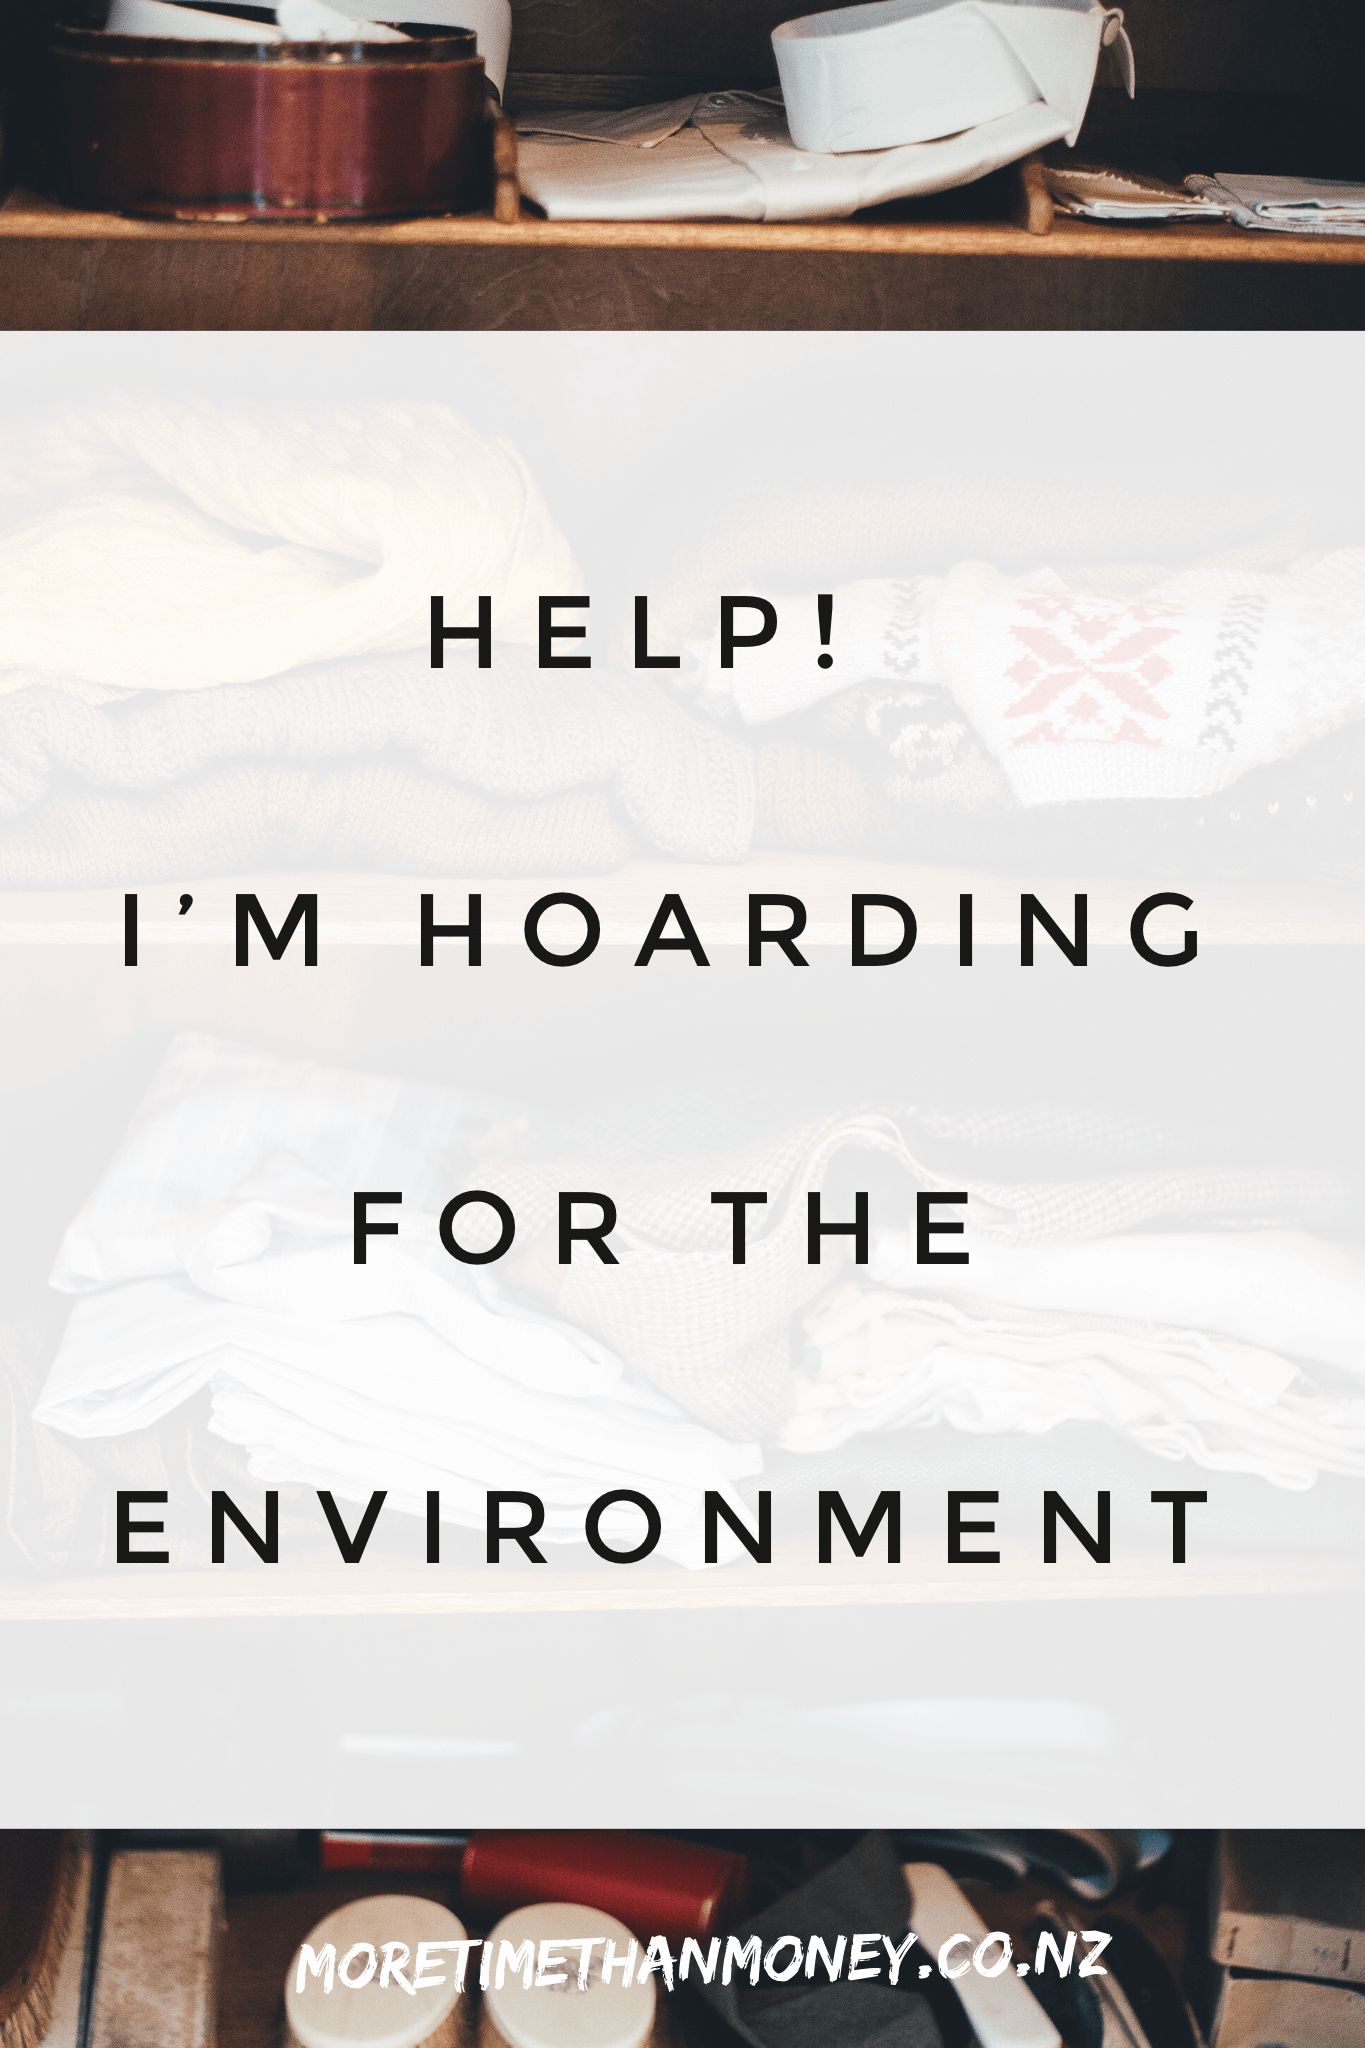 Help! I'm hoarding for the environment #minimalism #decluttering #zerowaste